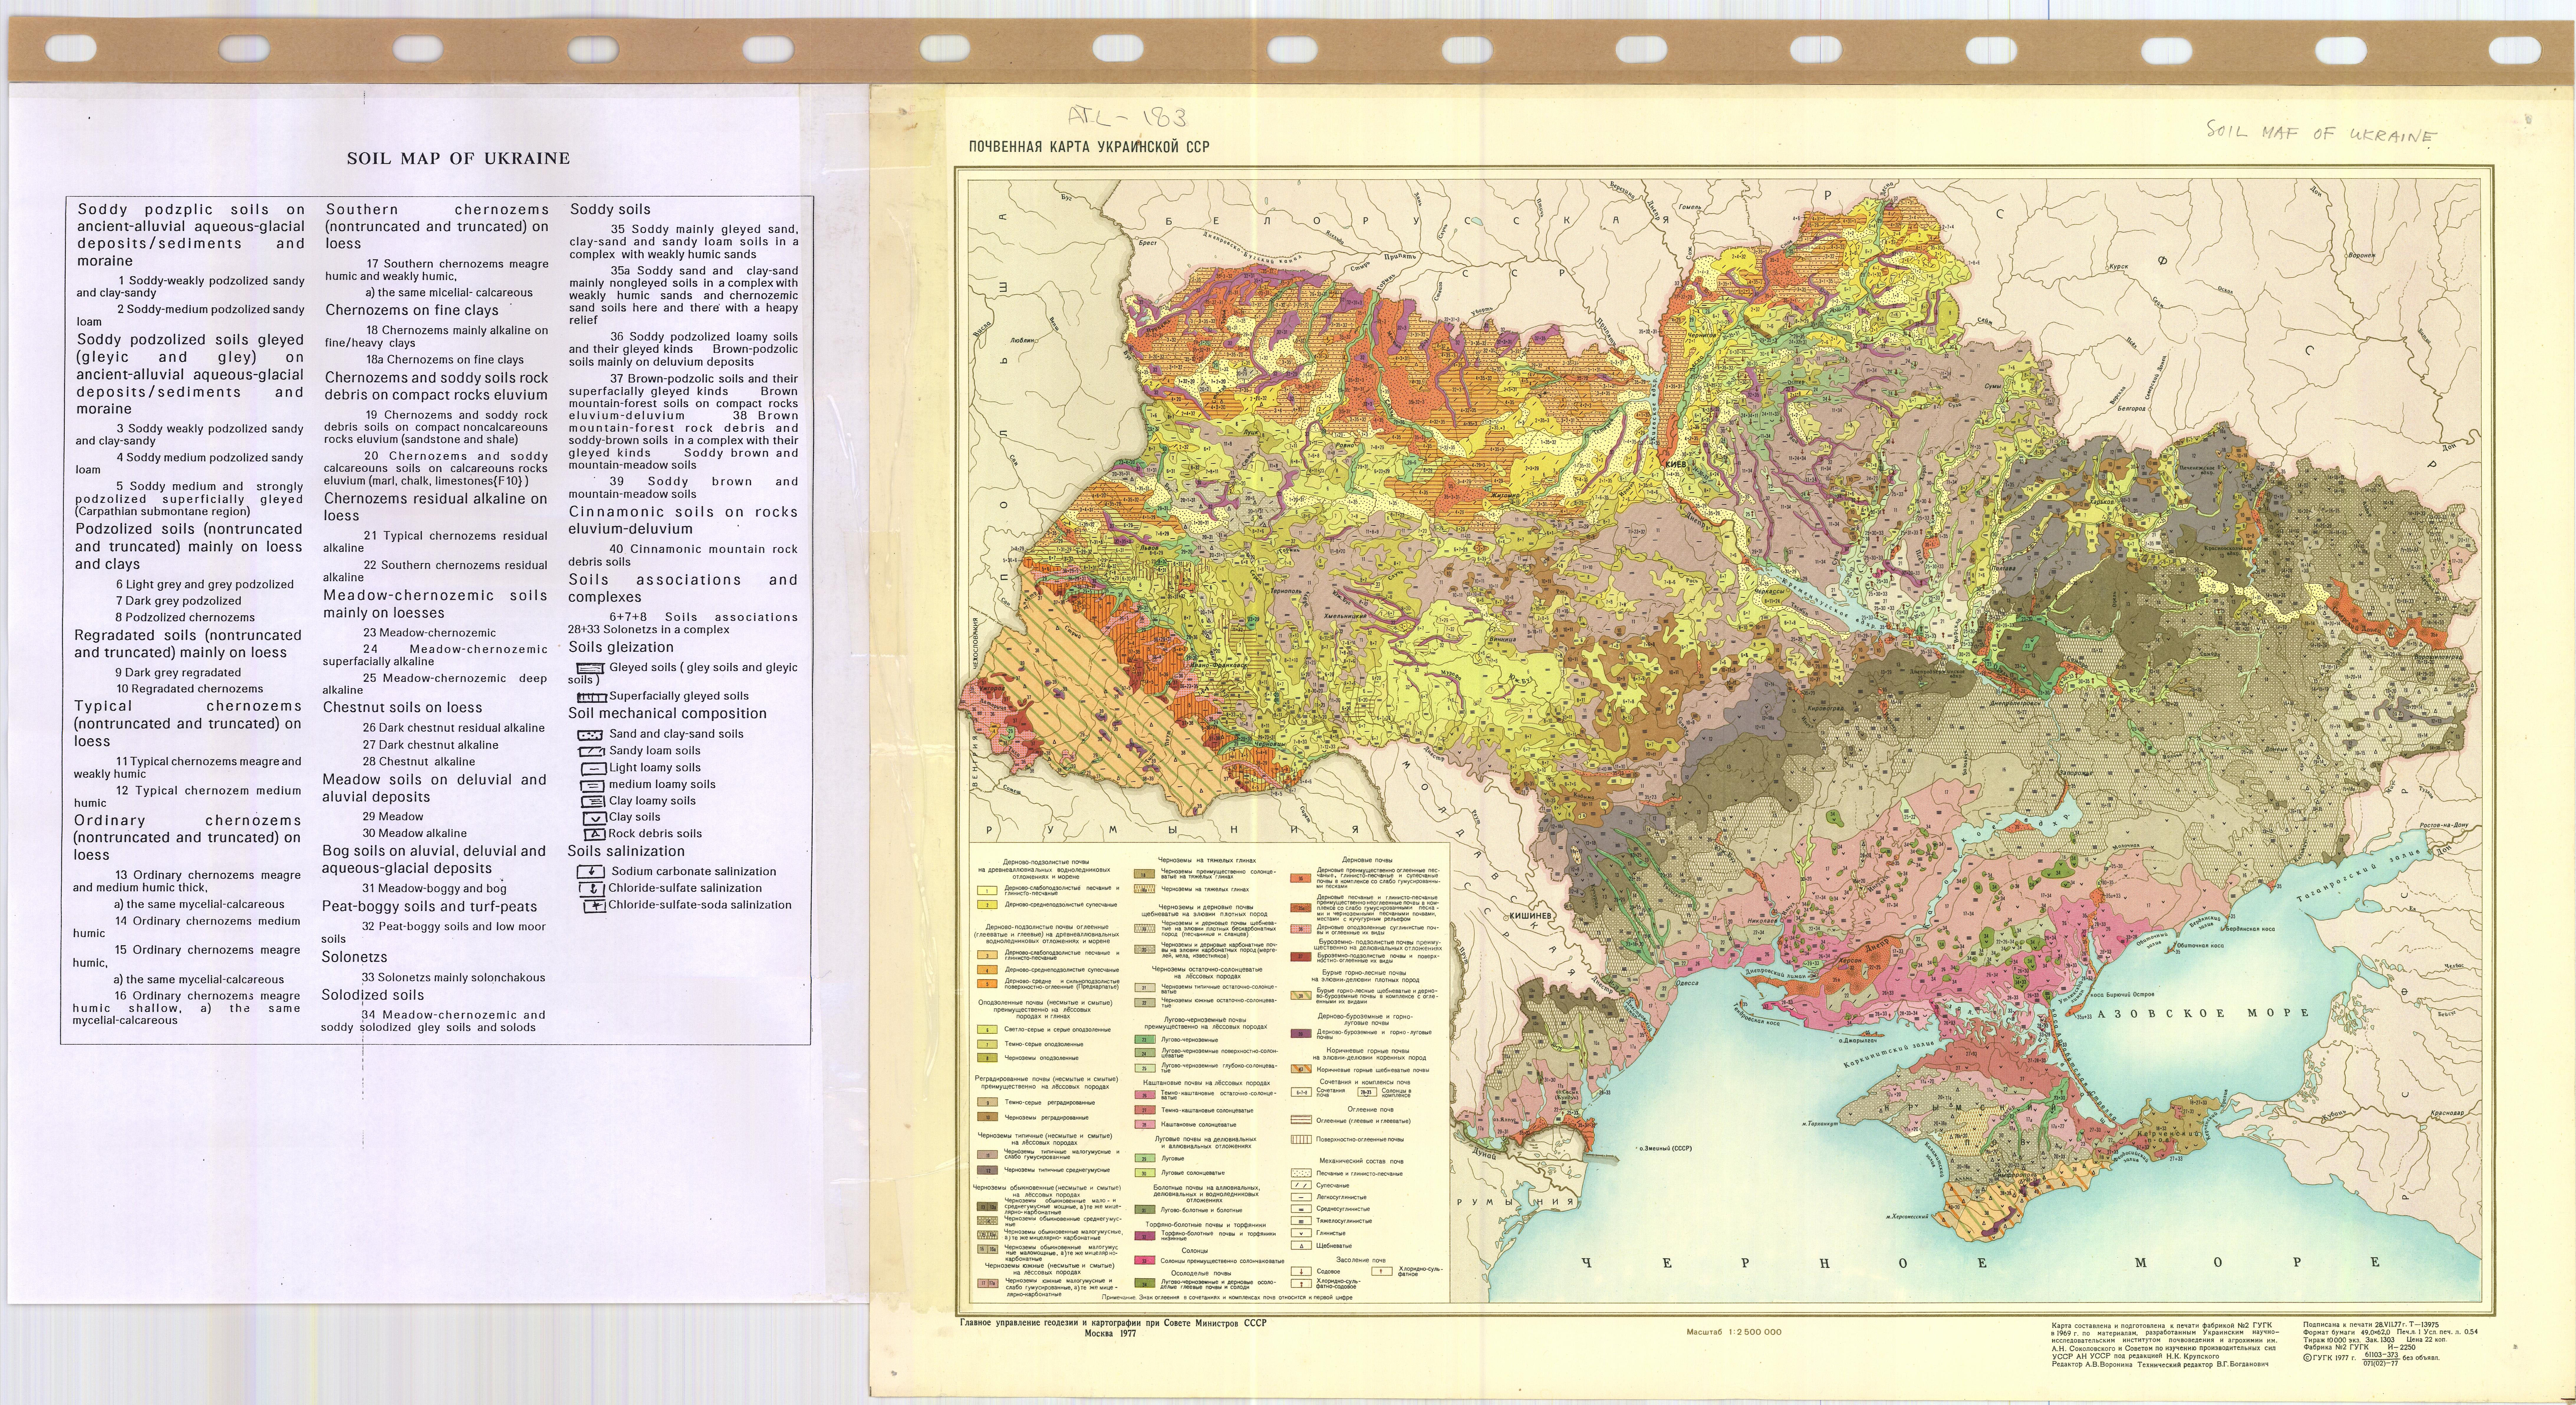 Title in russia soil map of ukraine esdac european commission download sciox Image collections